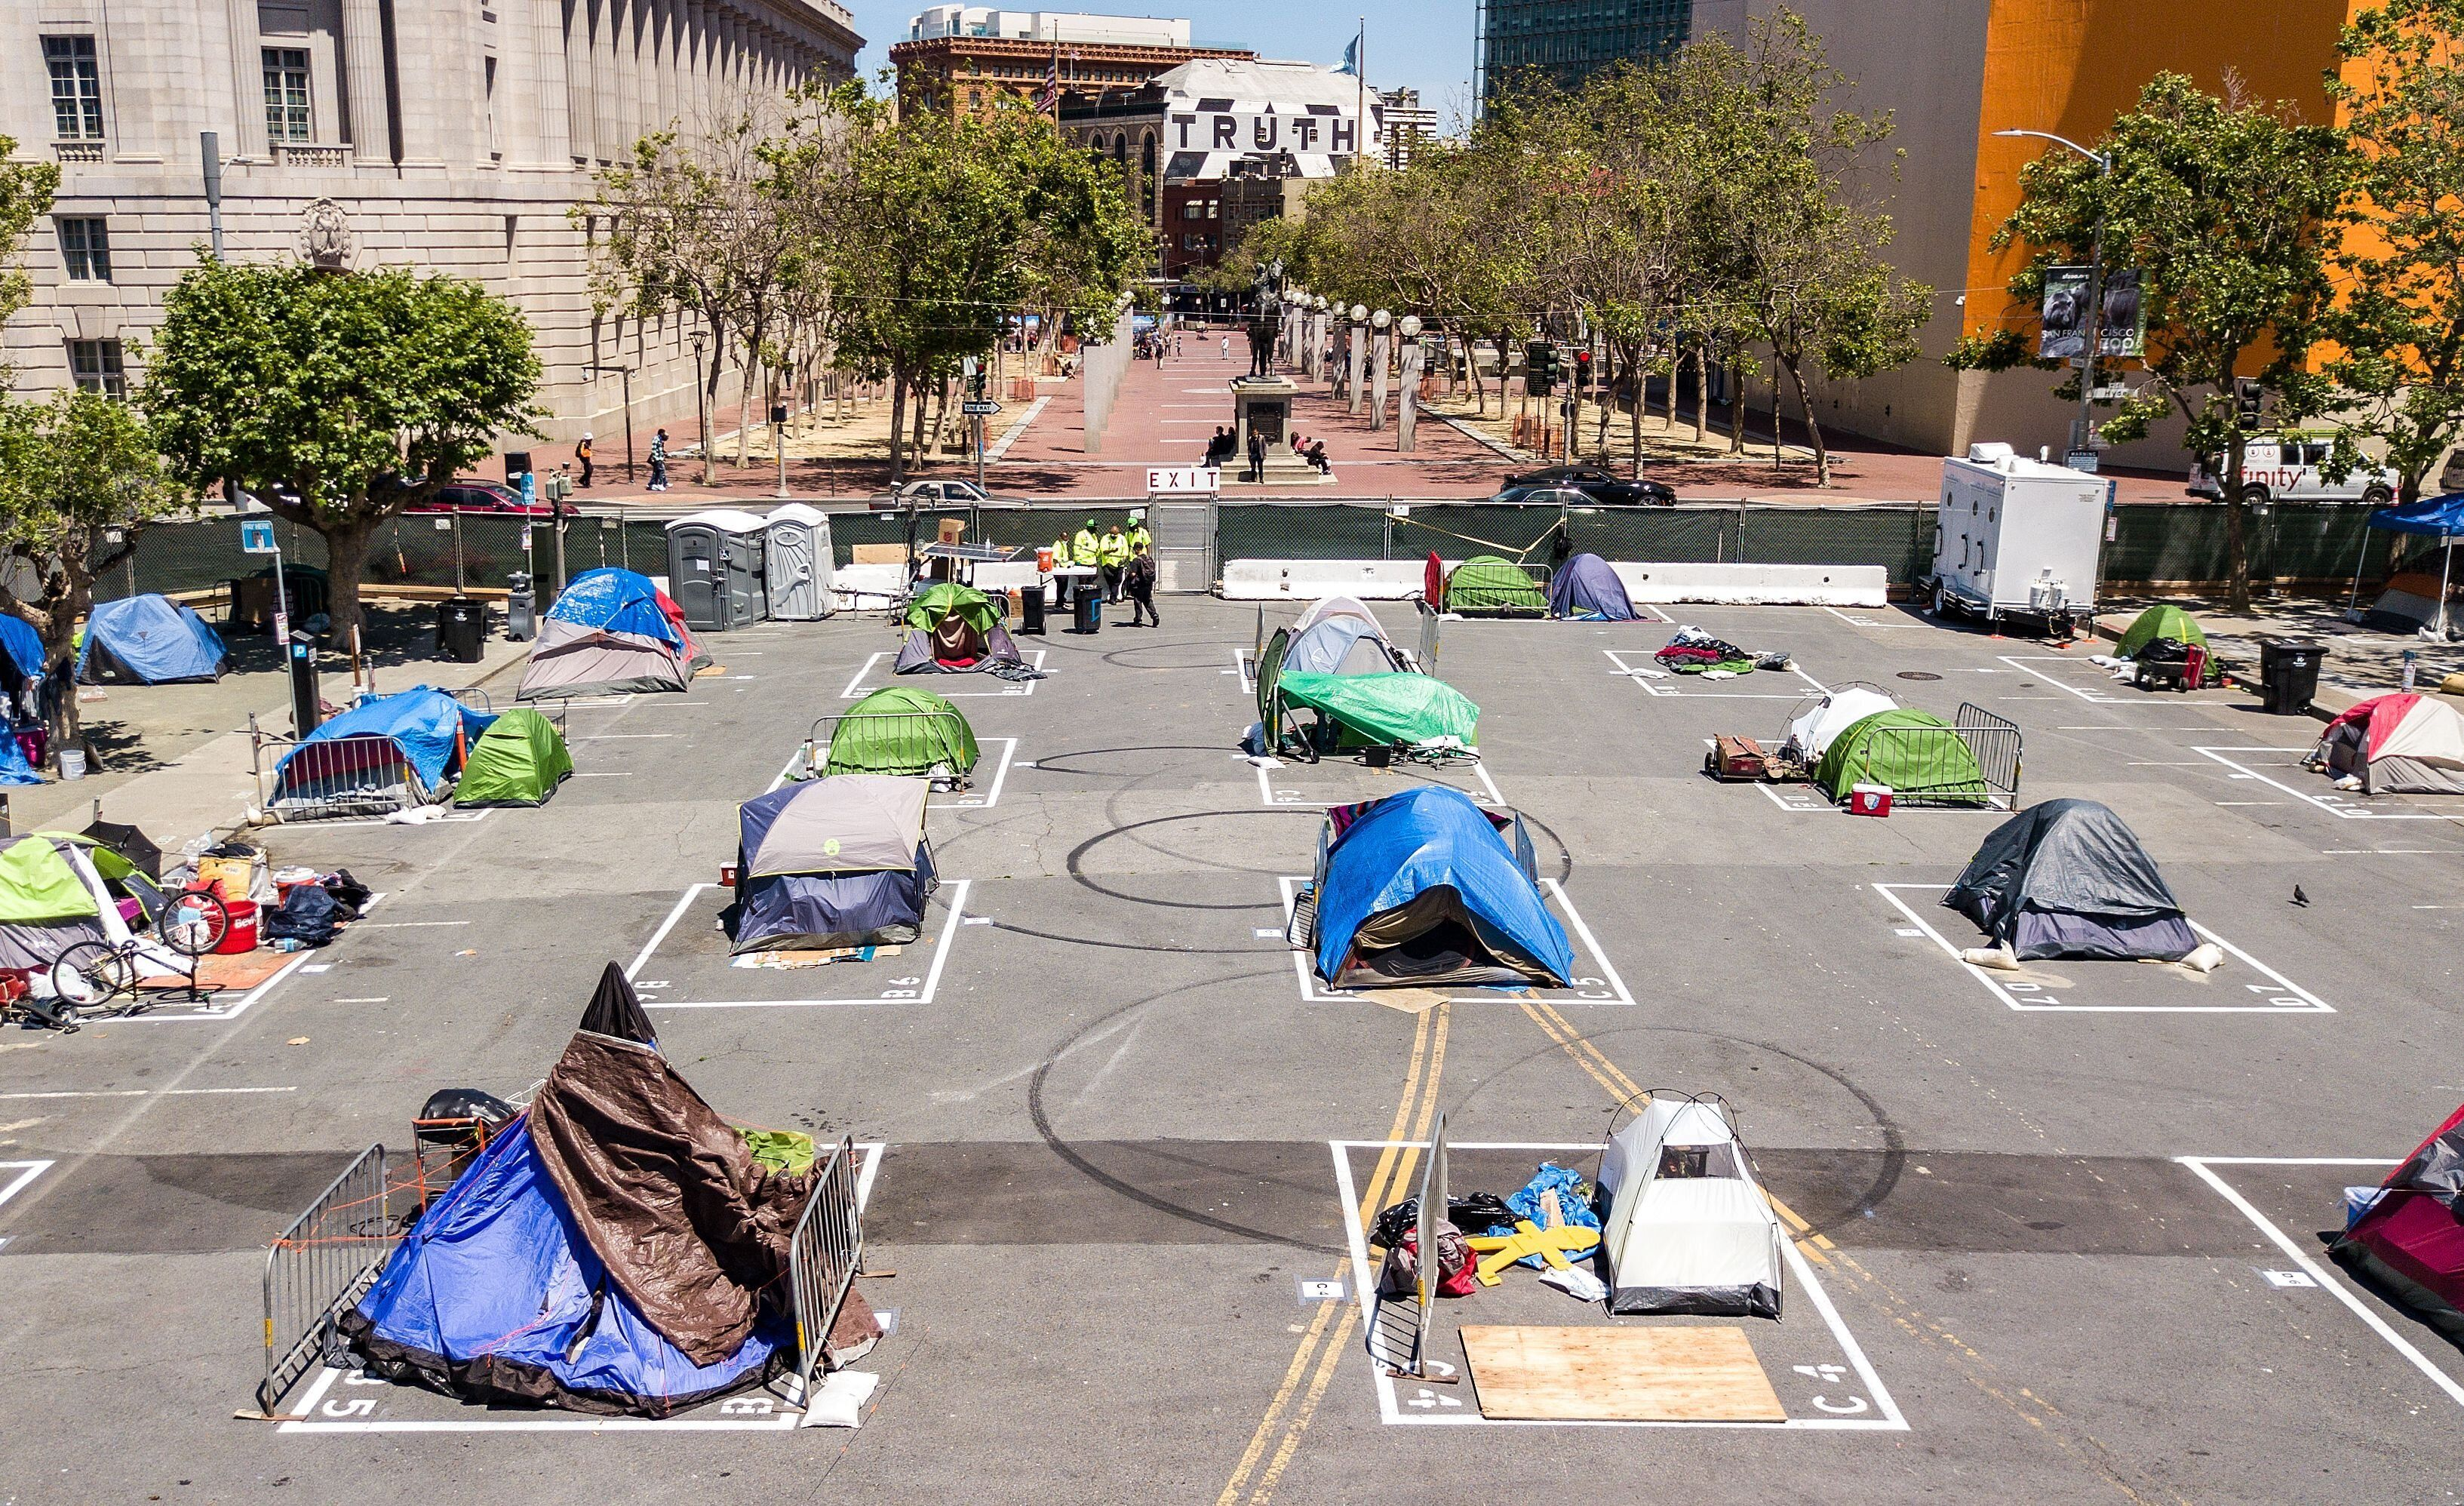 Rectangles on the ground encourage homeless people to observe social distancing at a city-sanctioned homeless encampment acro